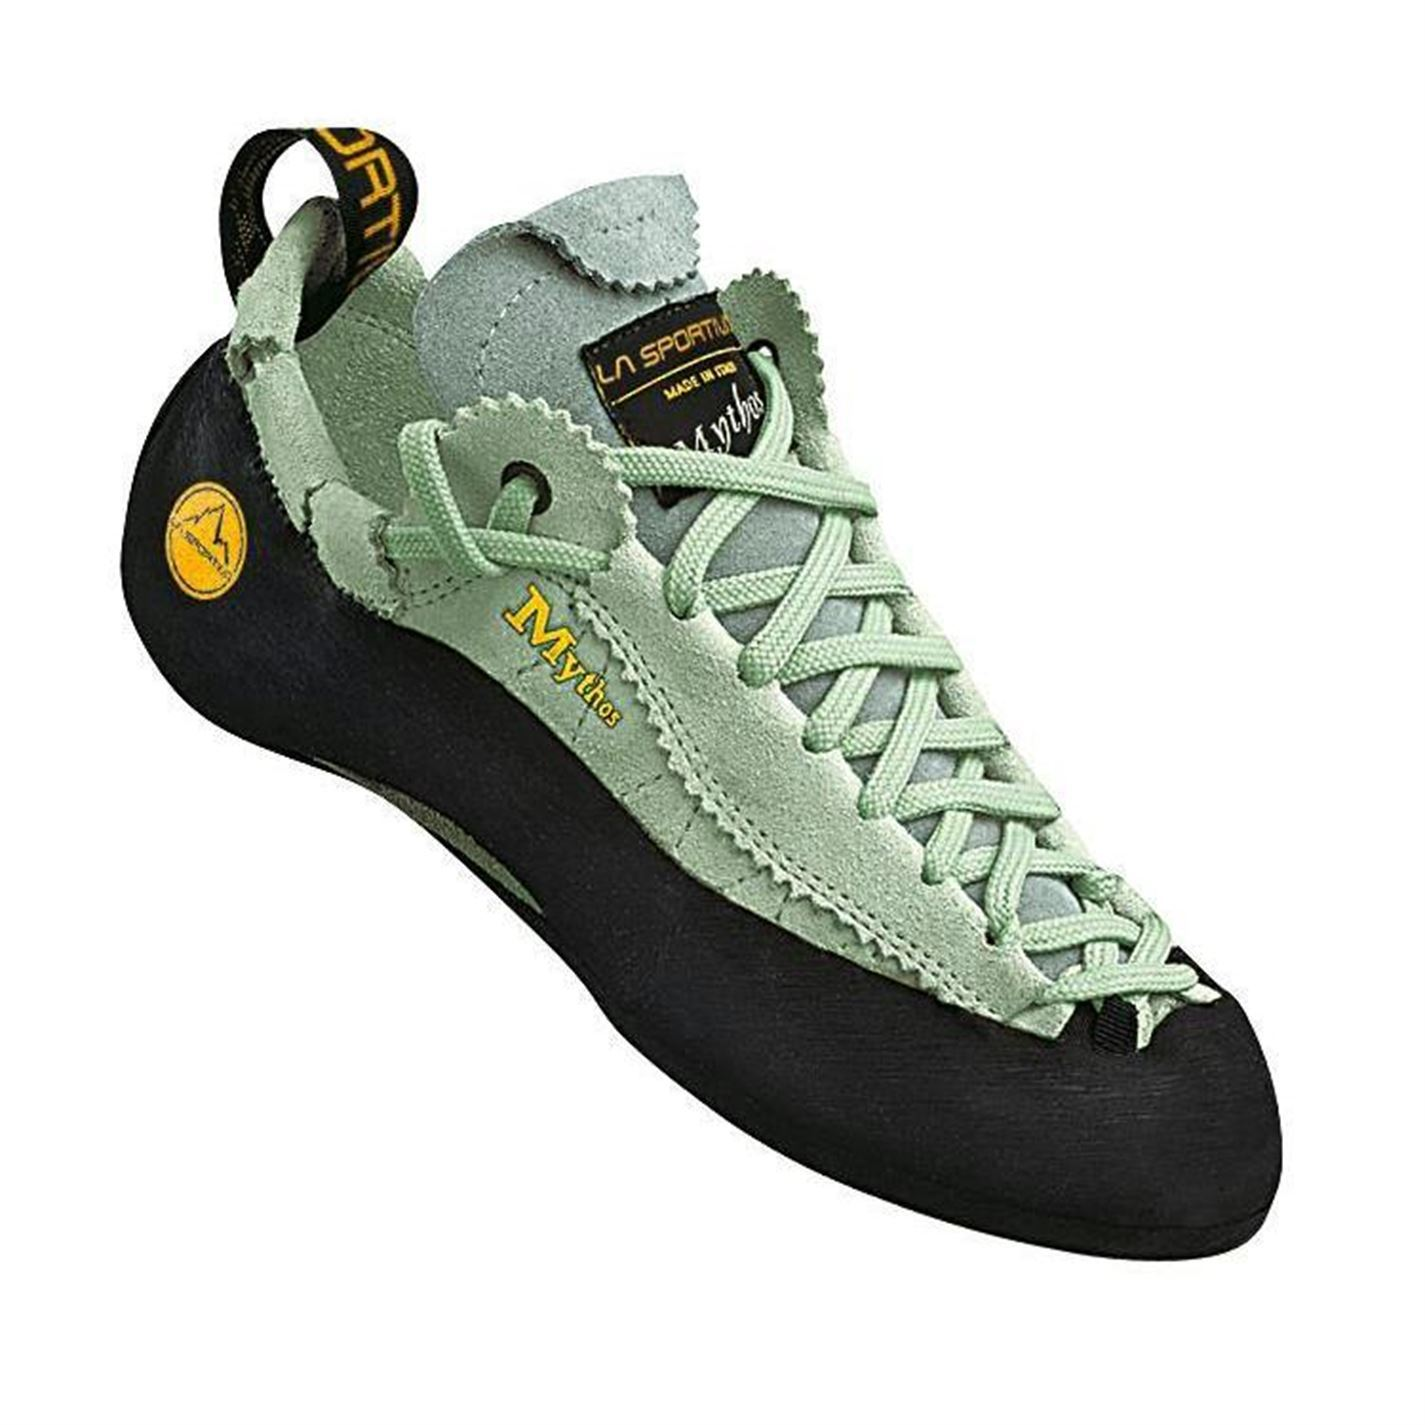 la sportiva womens ladies mythos climbing shoes outdoor activity accessories ebay. Black Bedroom Furniture Sets. Home Design Ideas